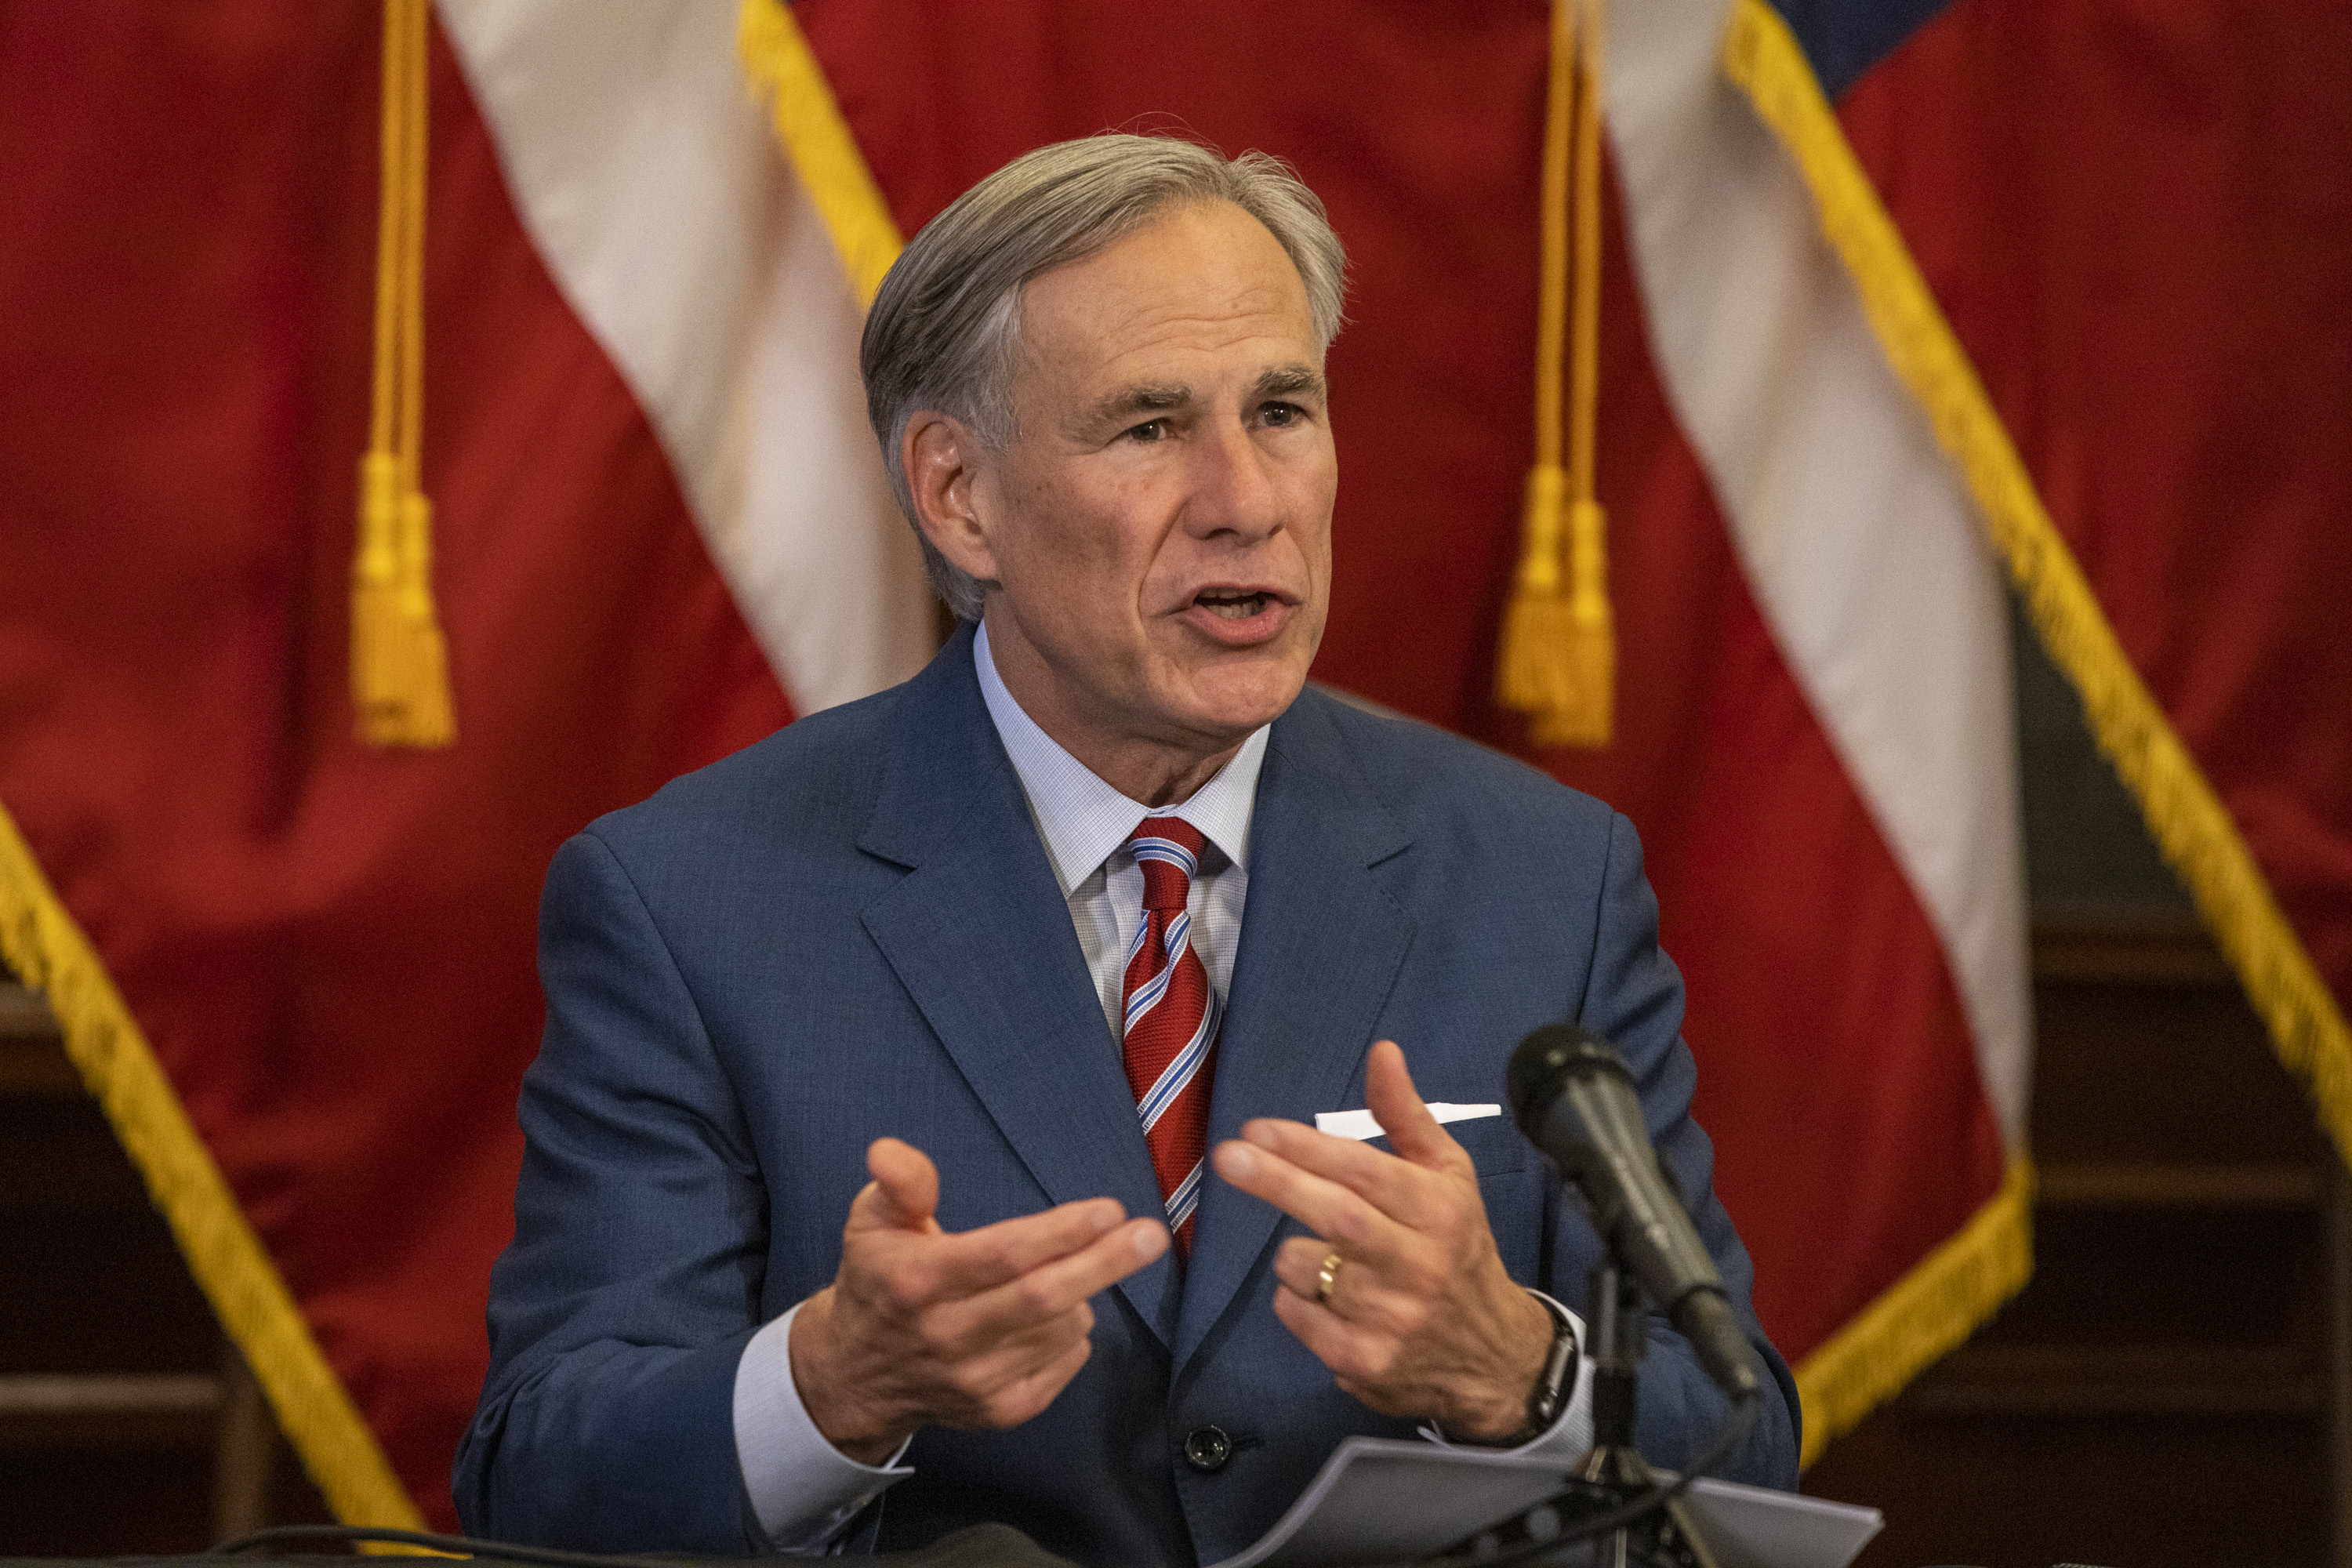 Did Greg Abbott Get Vaccinated Just Before Lifting Texas Mask Mandate?